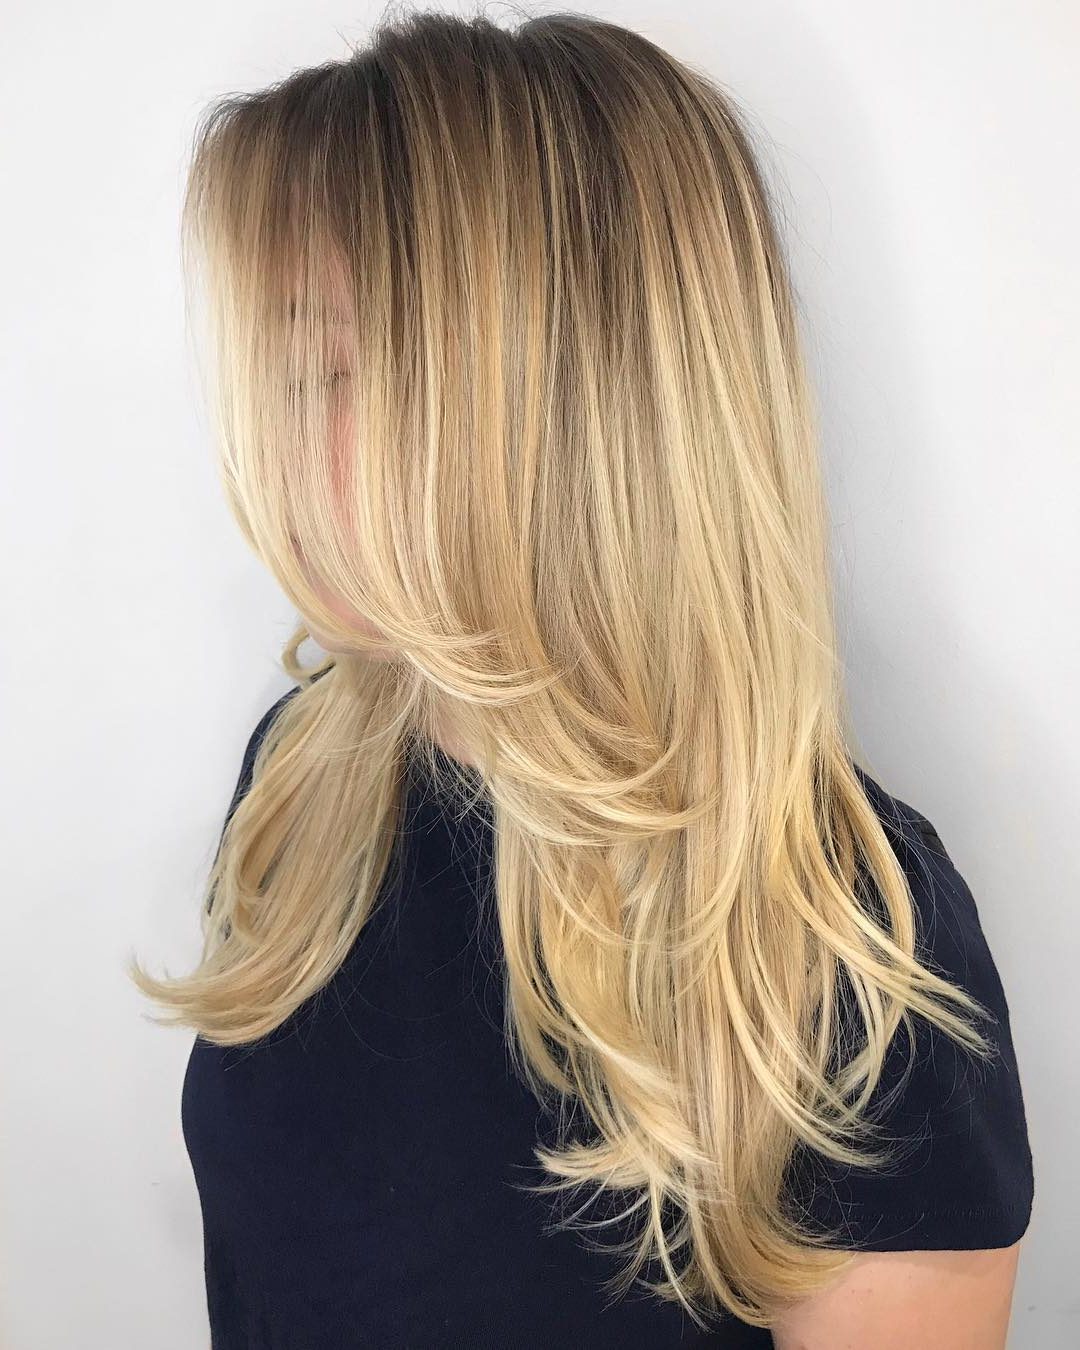 Widely Used Shiny Caramel Layers Long Shag Haircuts Inside How To Nail Layered Hair In 2019: Full Guide To Lengths And (Gallery 14 of 20)